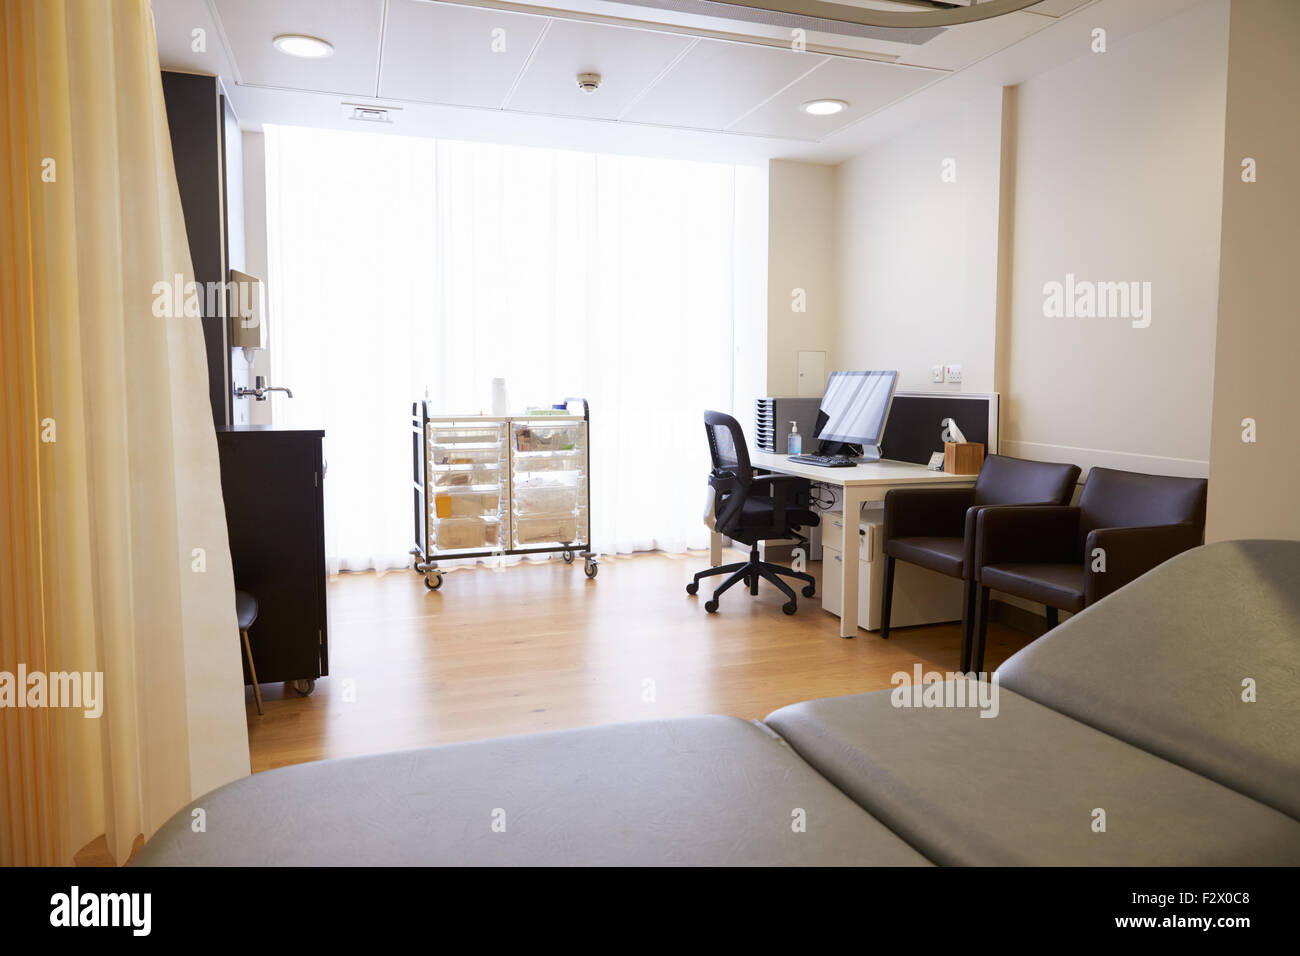 View Of Empty Doctor's Surgery - Stock Image